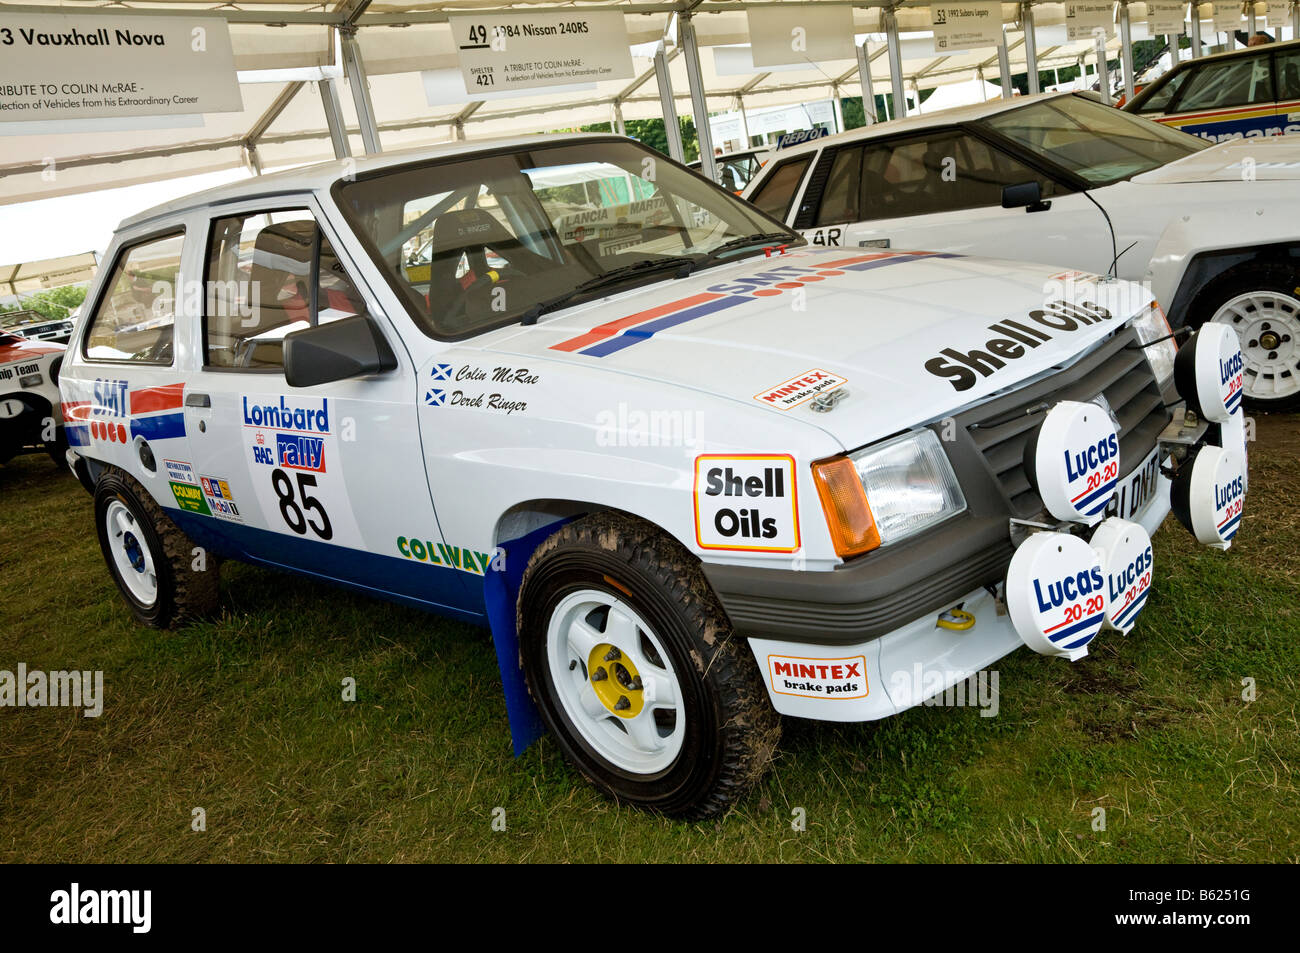 Vauxhall Nova Stock Photos & Vauxhall Nova Stock Images - Alamy